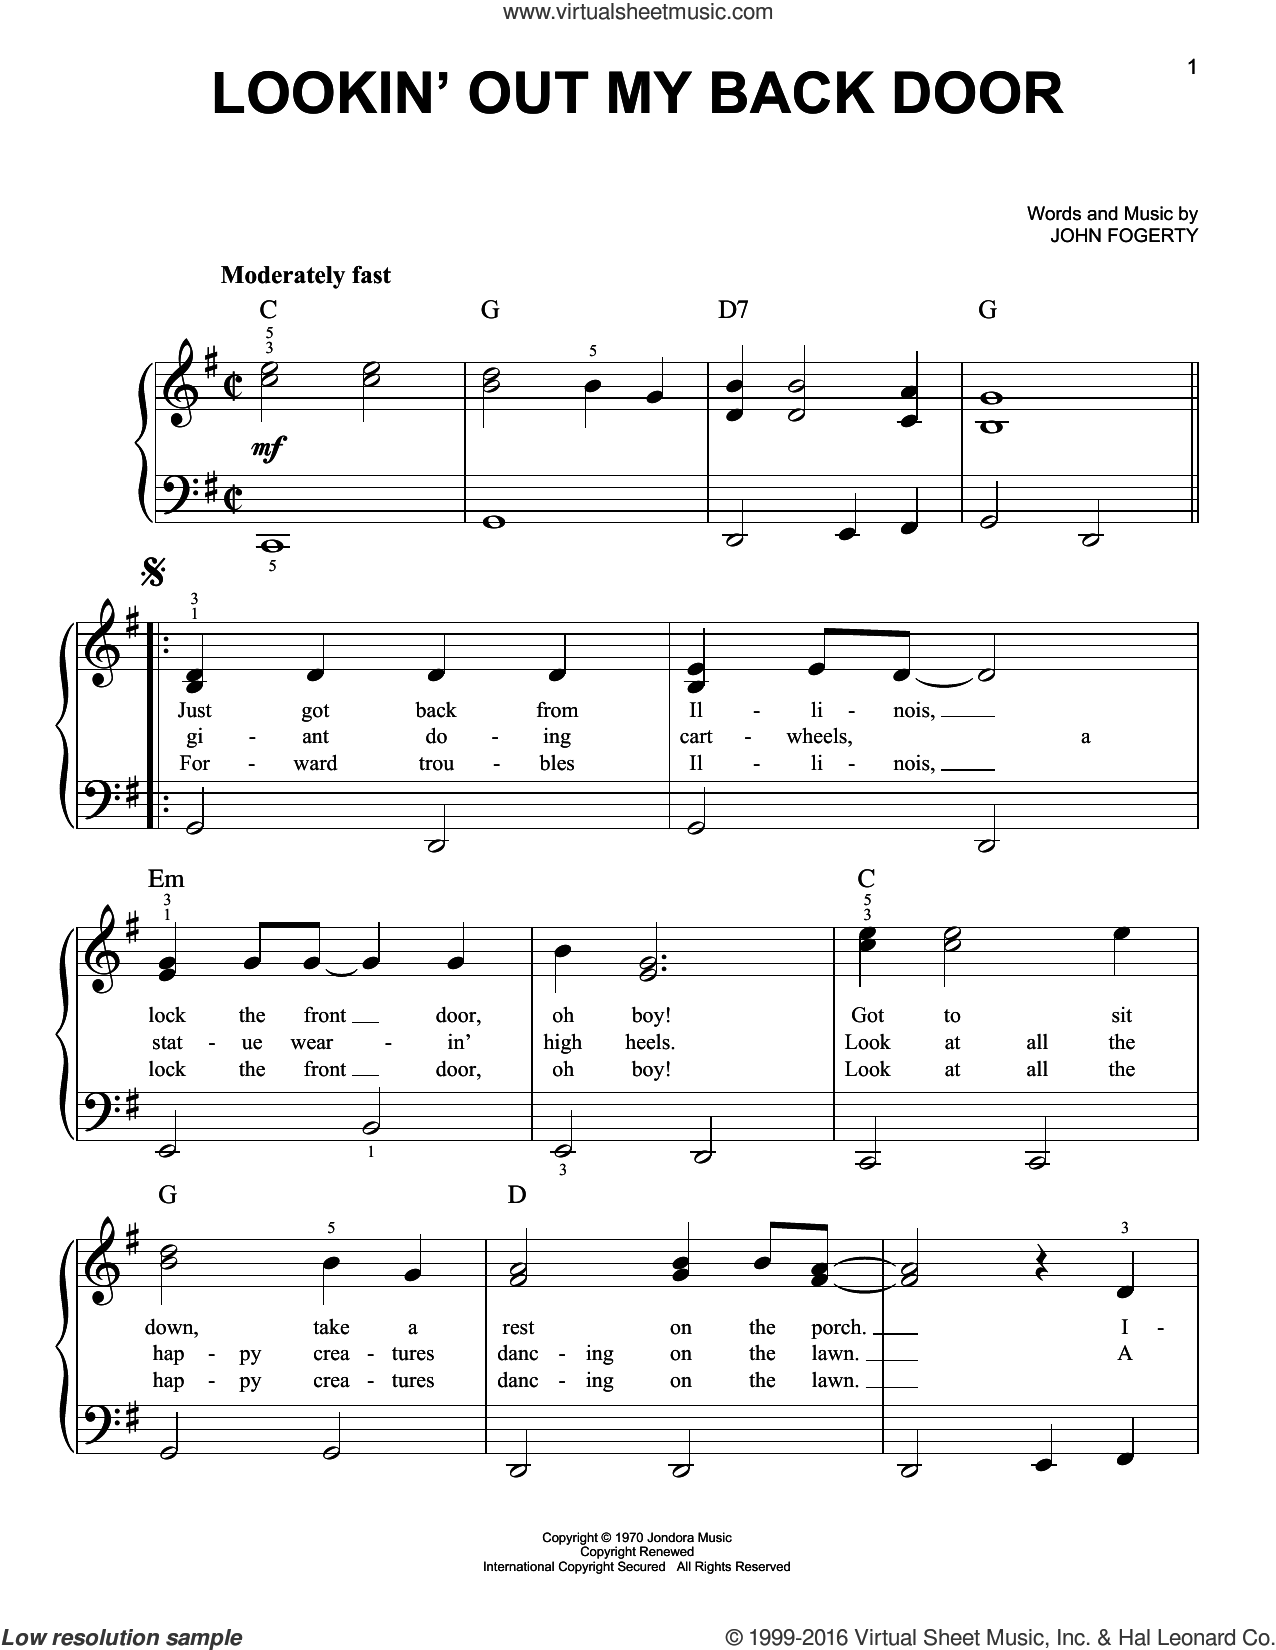 Lookin' Out My Back Door sheet music for piano solo by John Fogerty